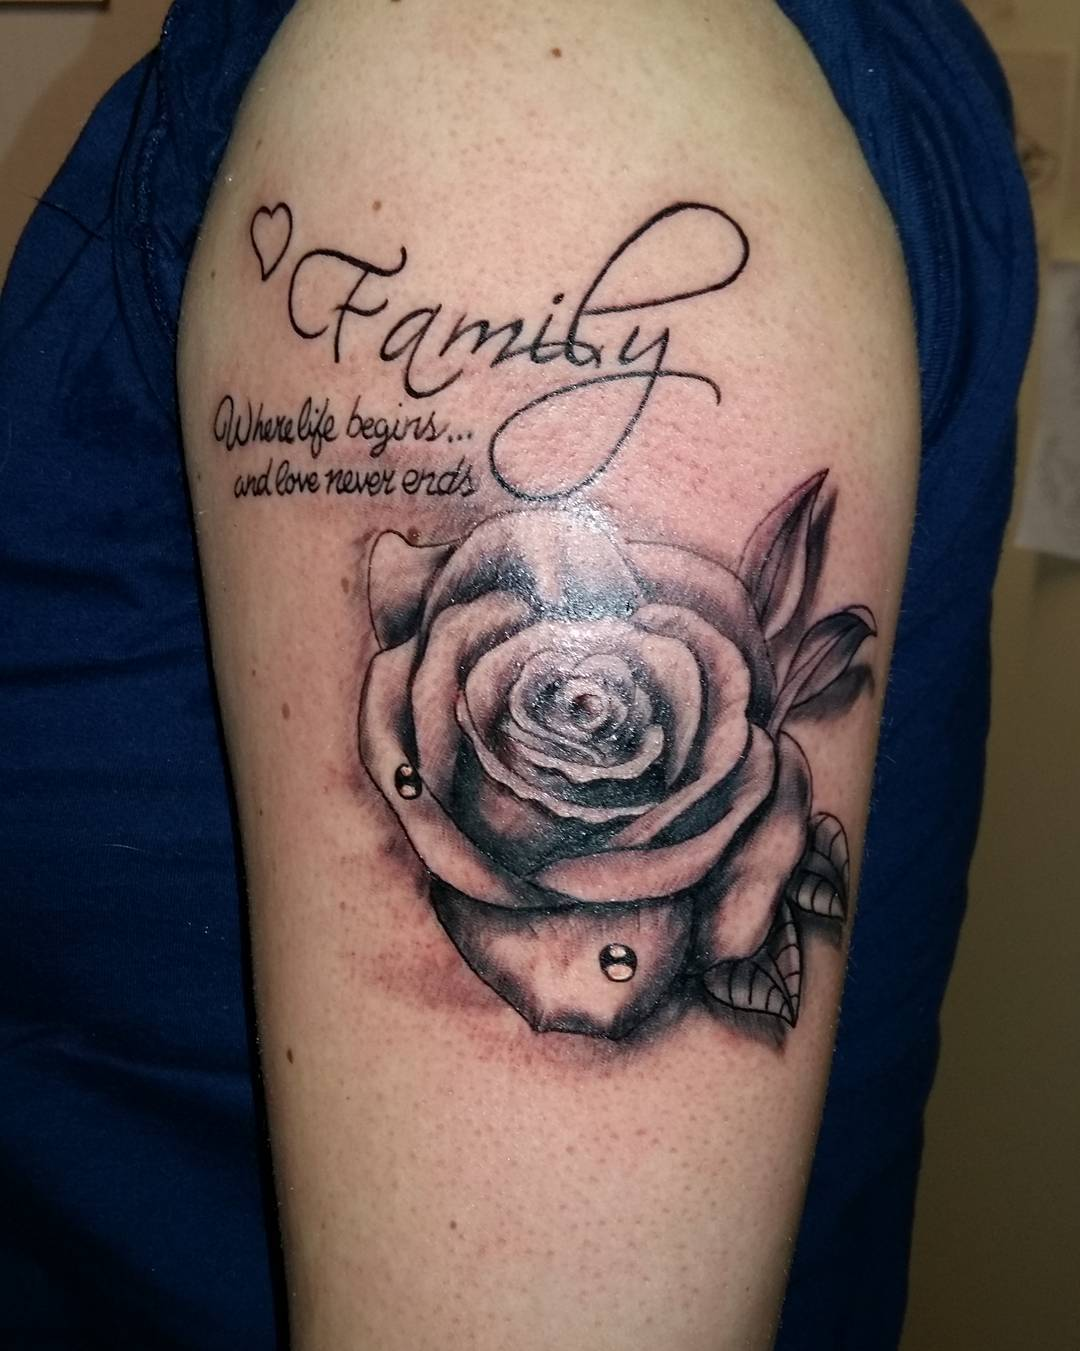 Tattoo Since My Pictures to Pin on Pinterest - TattoosKid